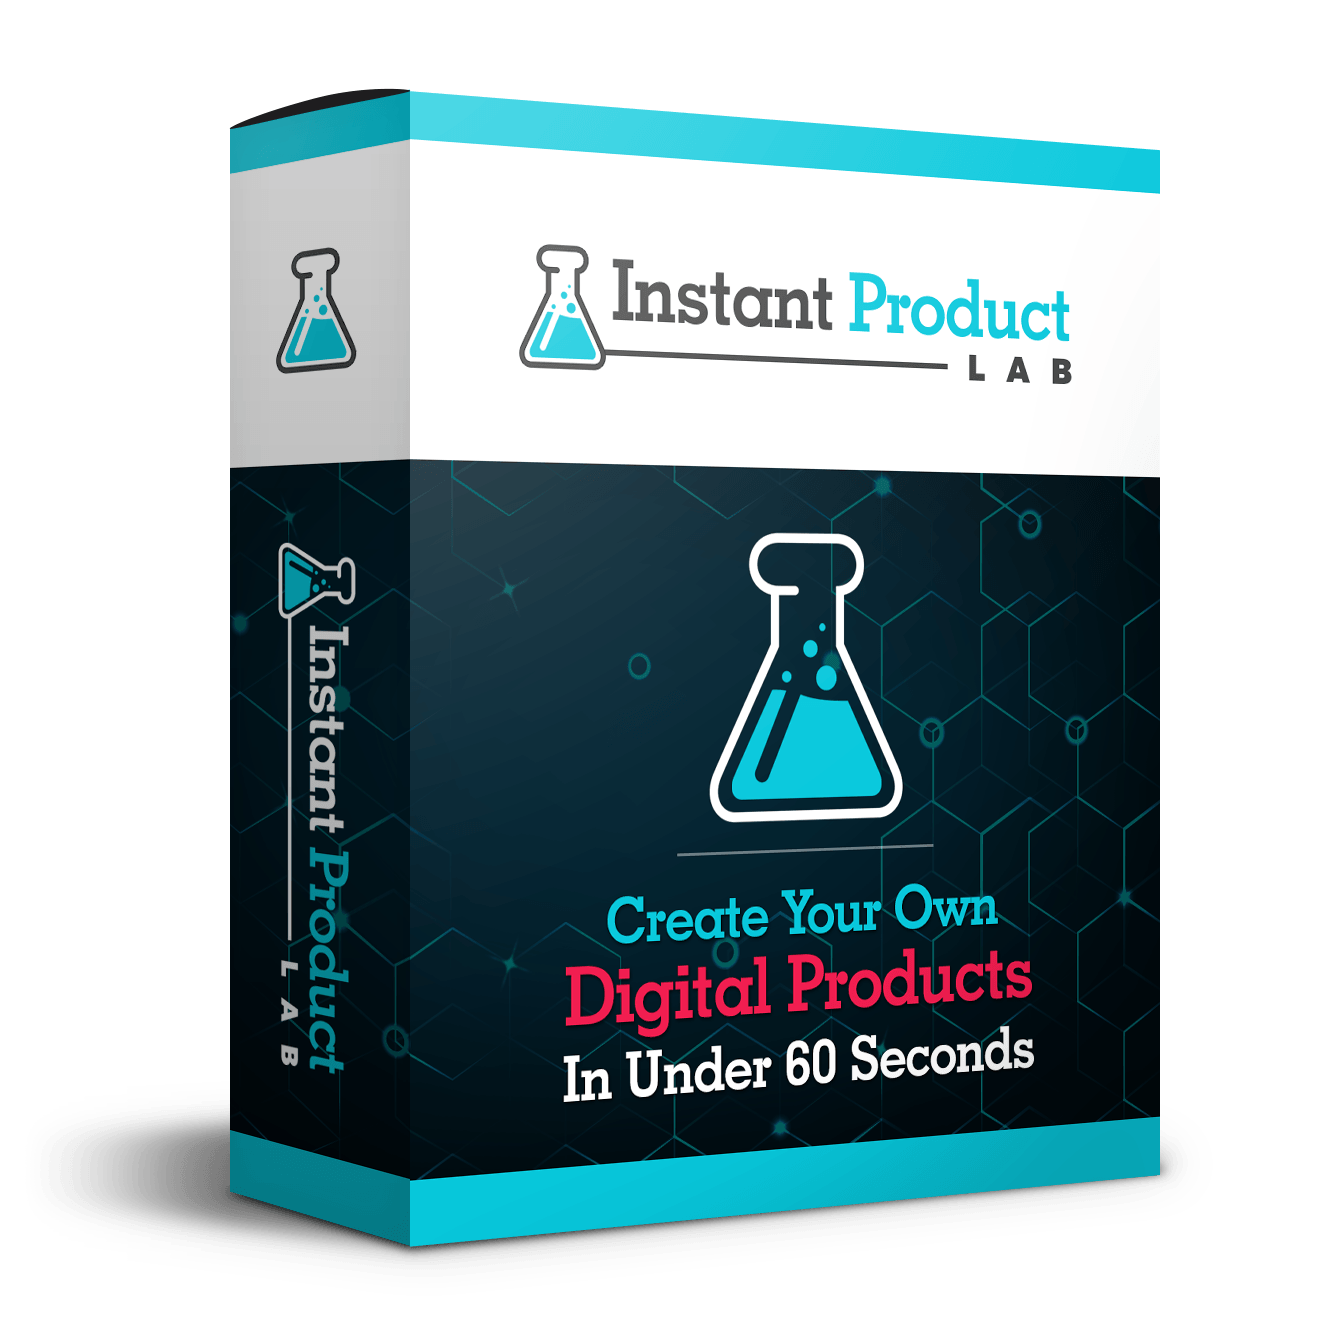 Instant Product Lab